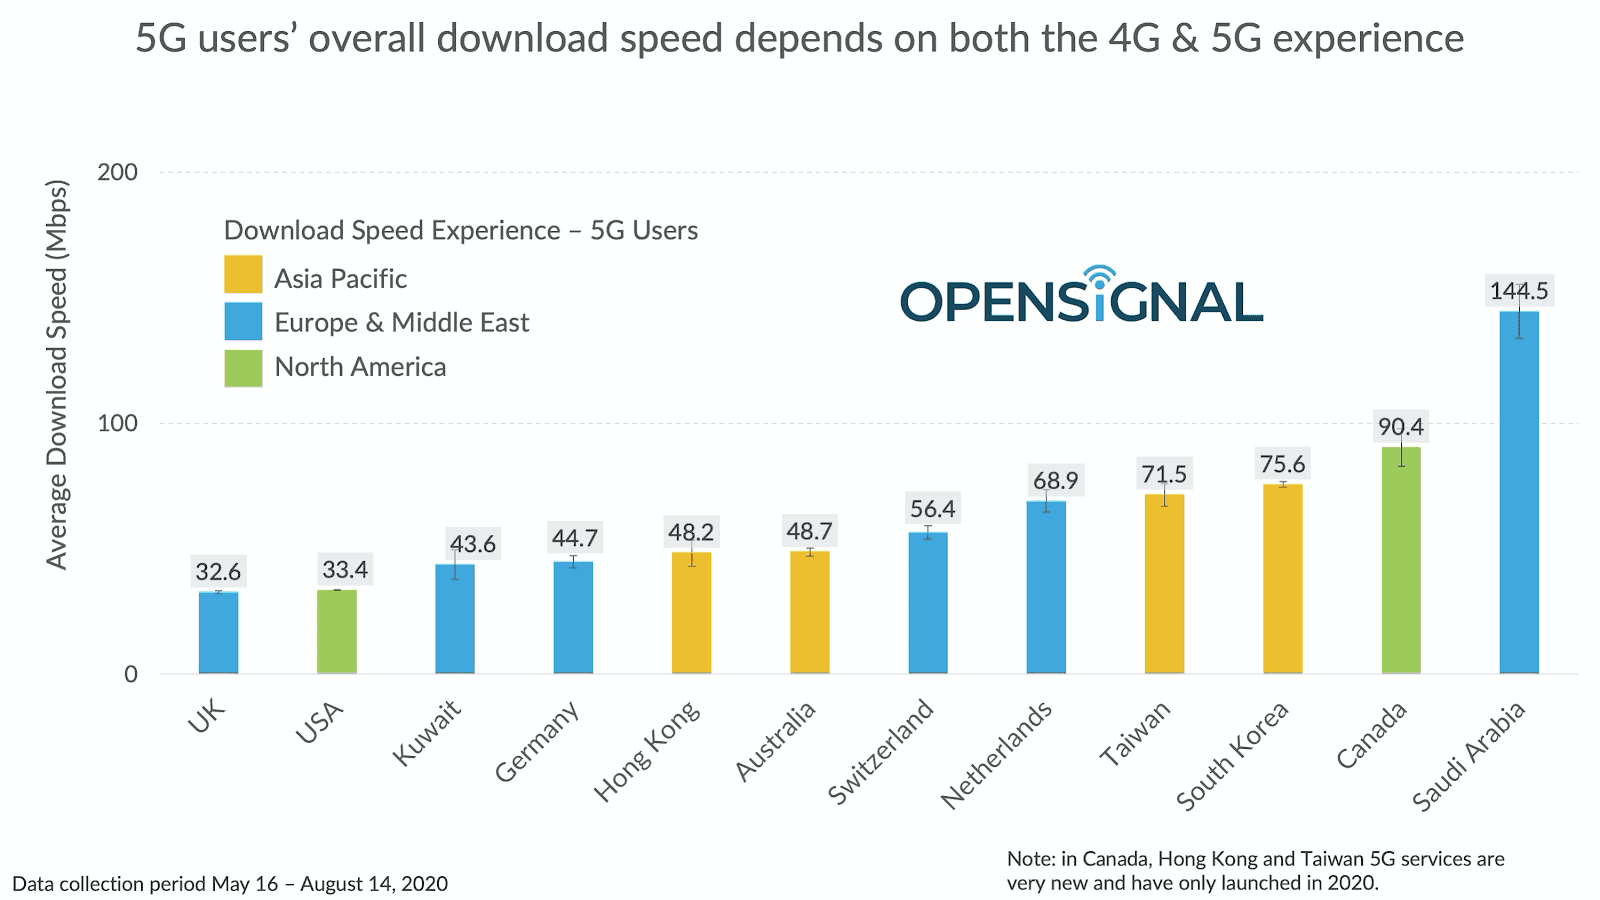 opensignal average 5g download speed